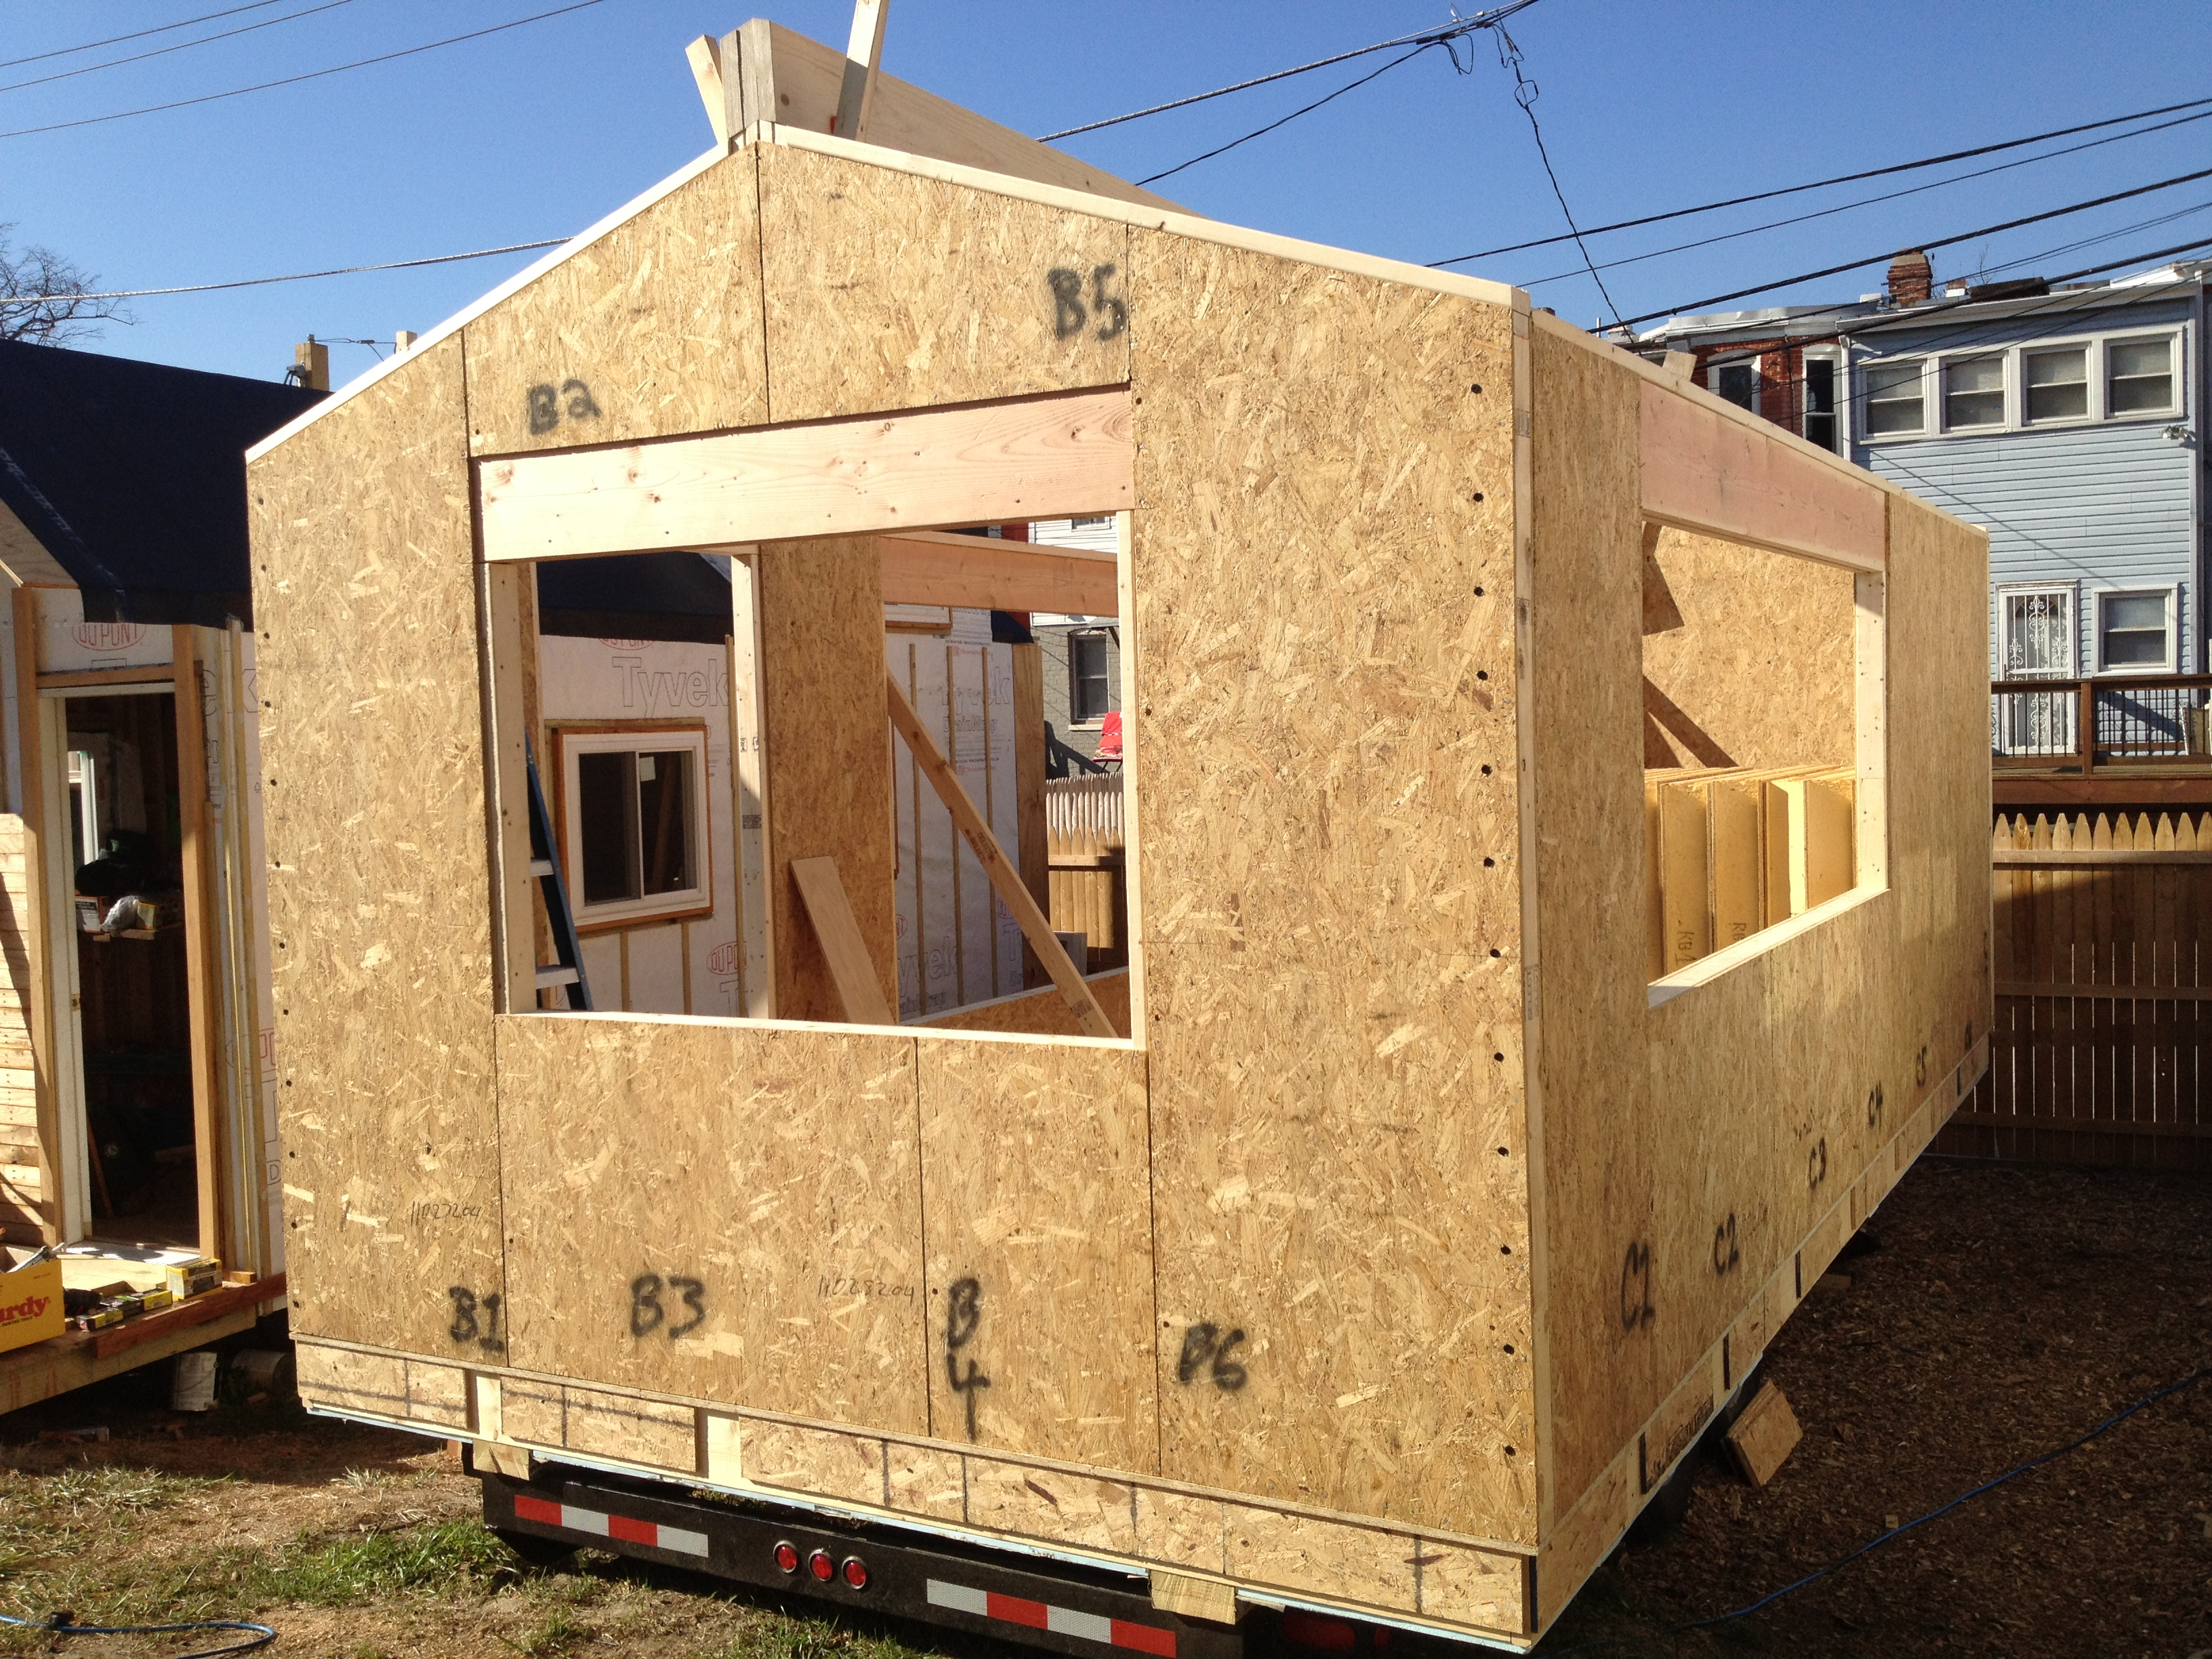 Minim house construction starts micro showcase for Sips house